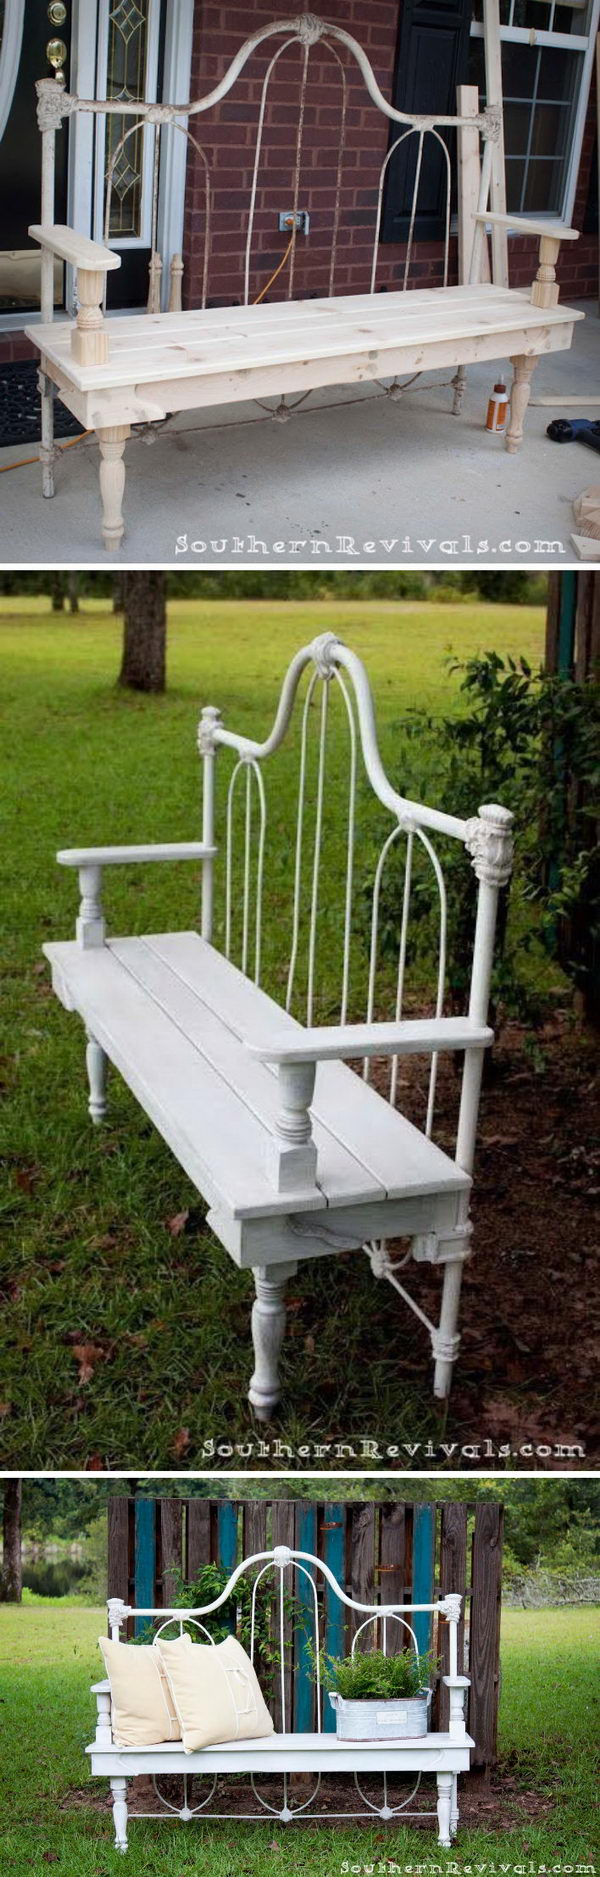 Astonishing 40 Creative Outdoor Bench Diy Ideas And Tutorials 2017 Evergreenethics Interior Chair Design Evergreenethicsorg